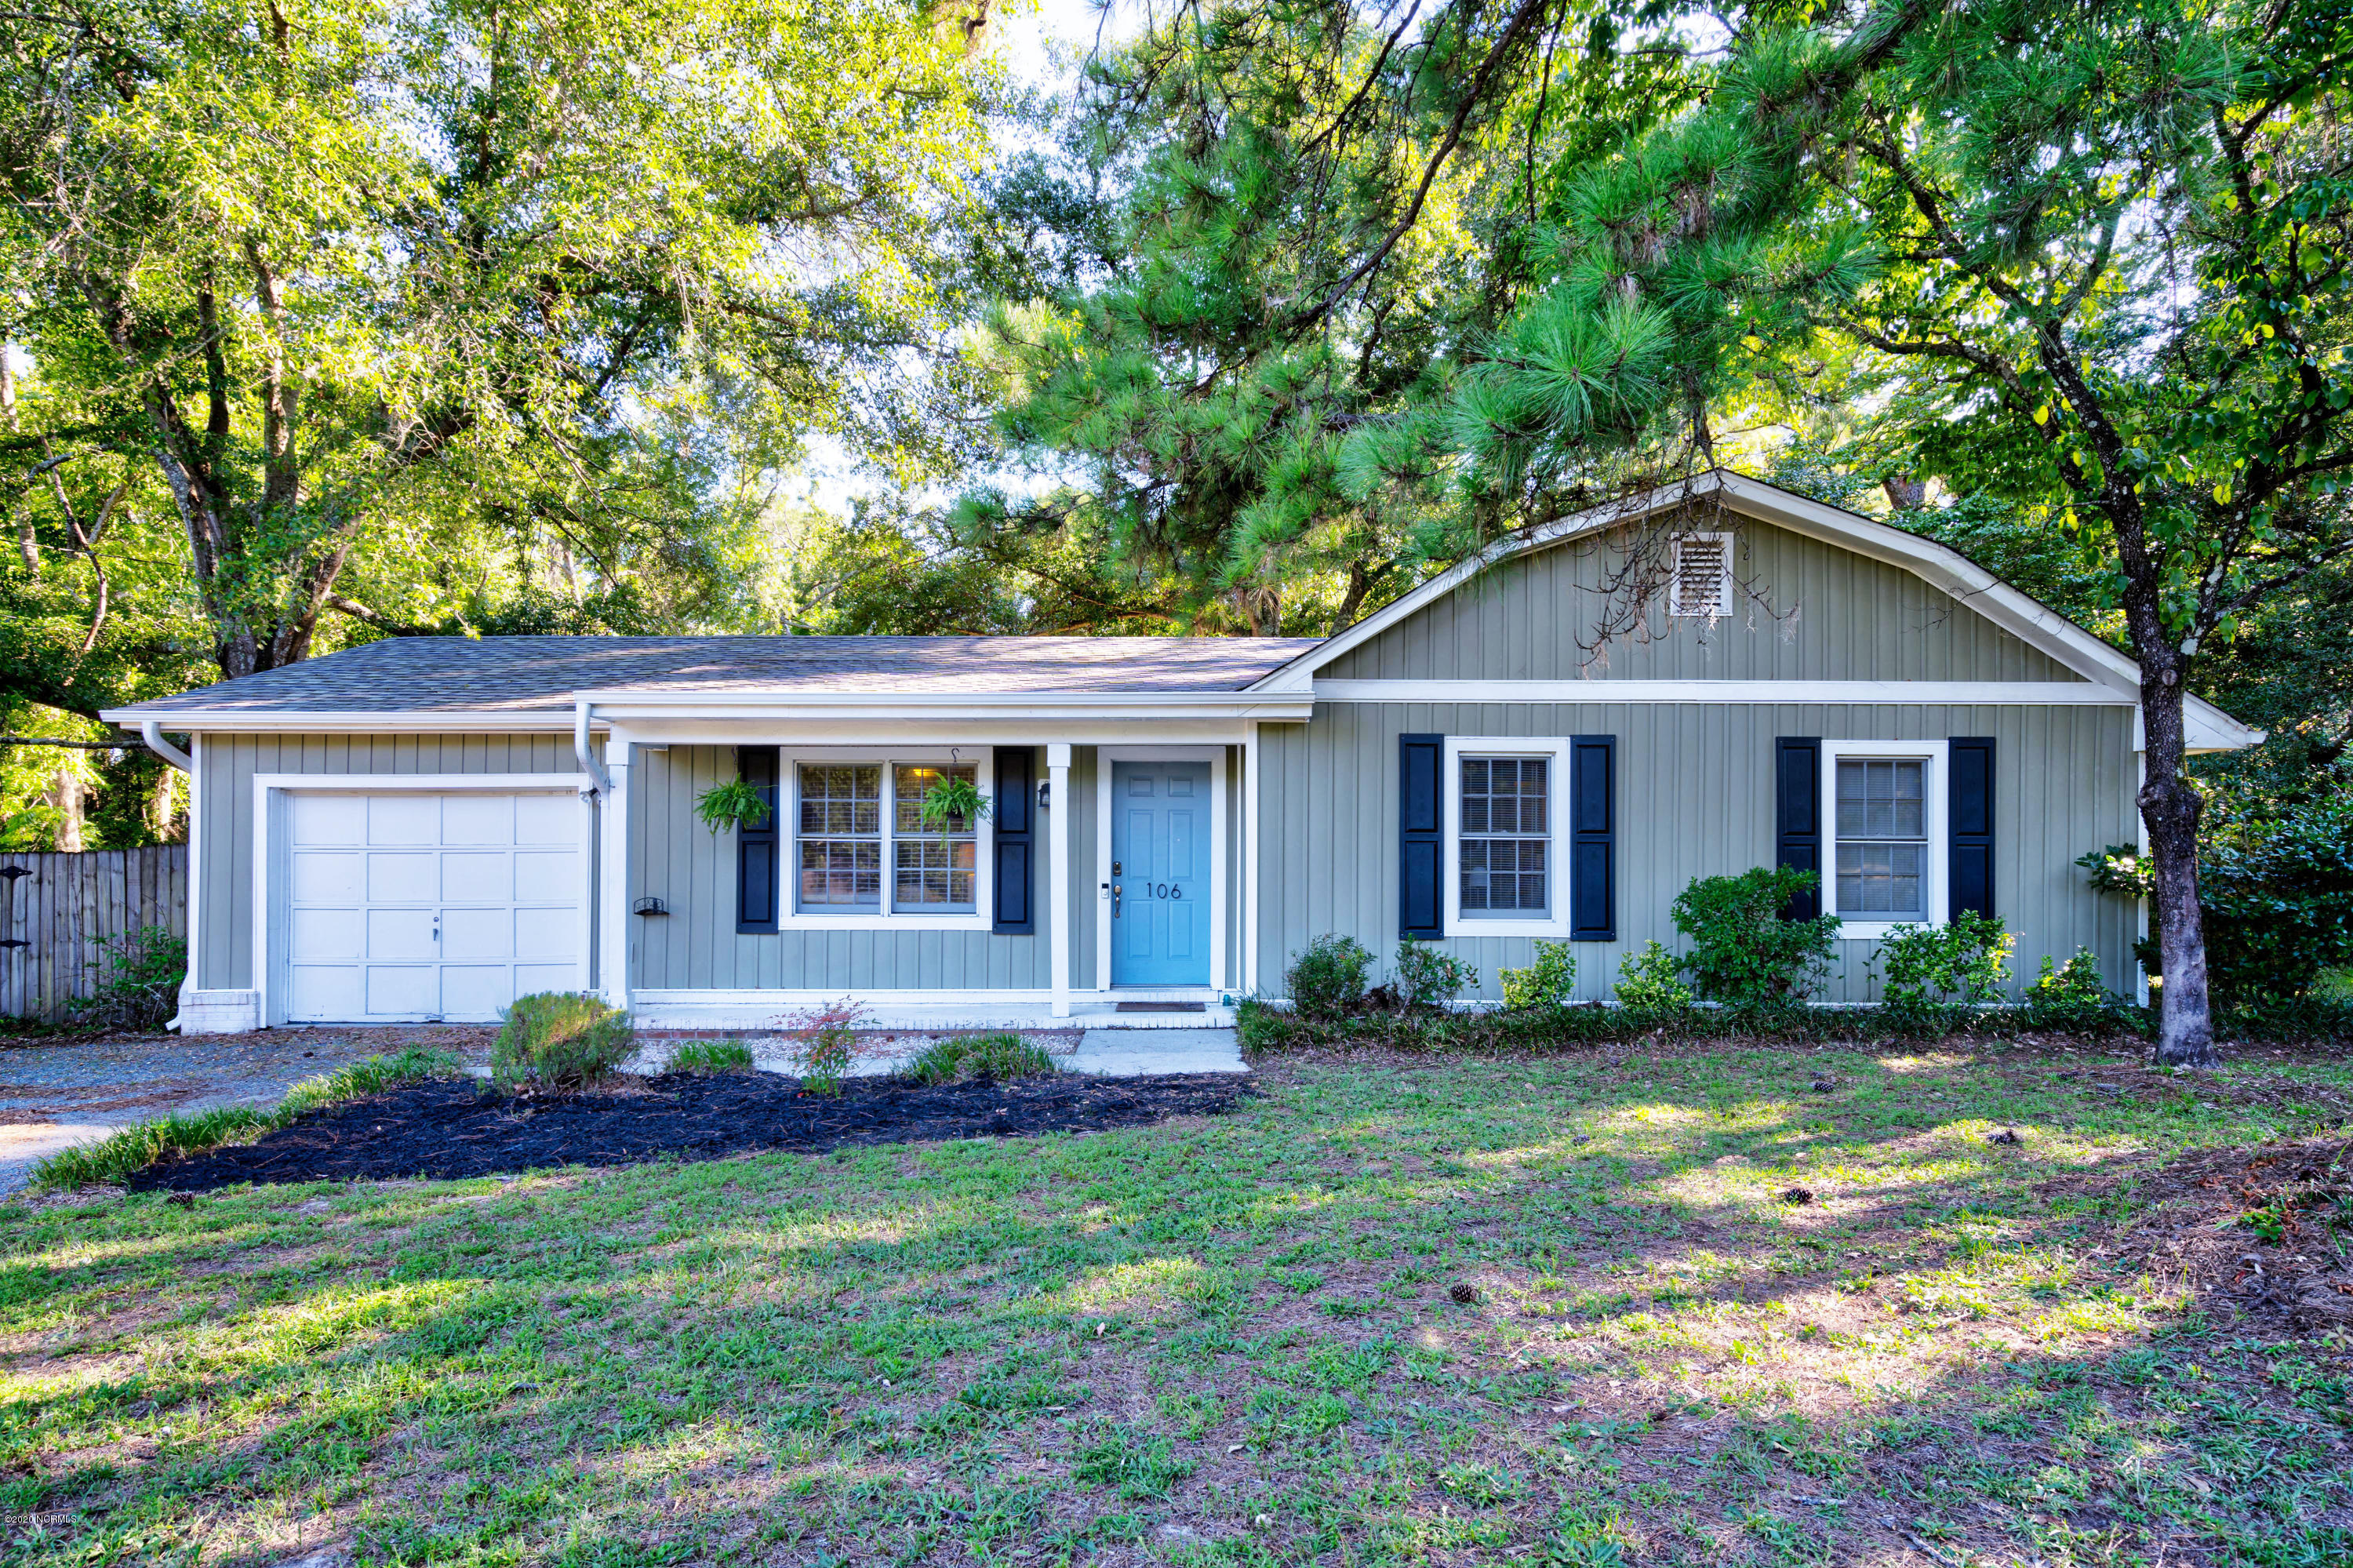 106 Buff Circle, Wilmington, North Carolina 28411, 3 Bedrooms Bedrooms, ,1 BathroomBathrooms,Residential,For Sale,Buff,100228119